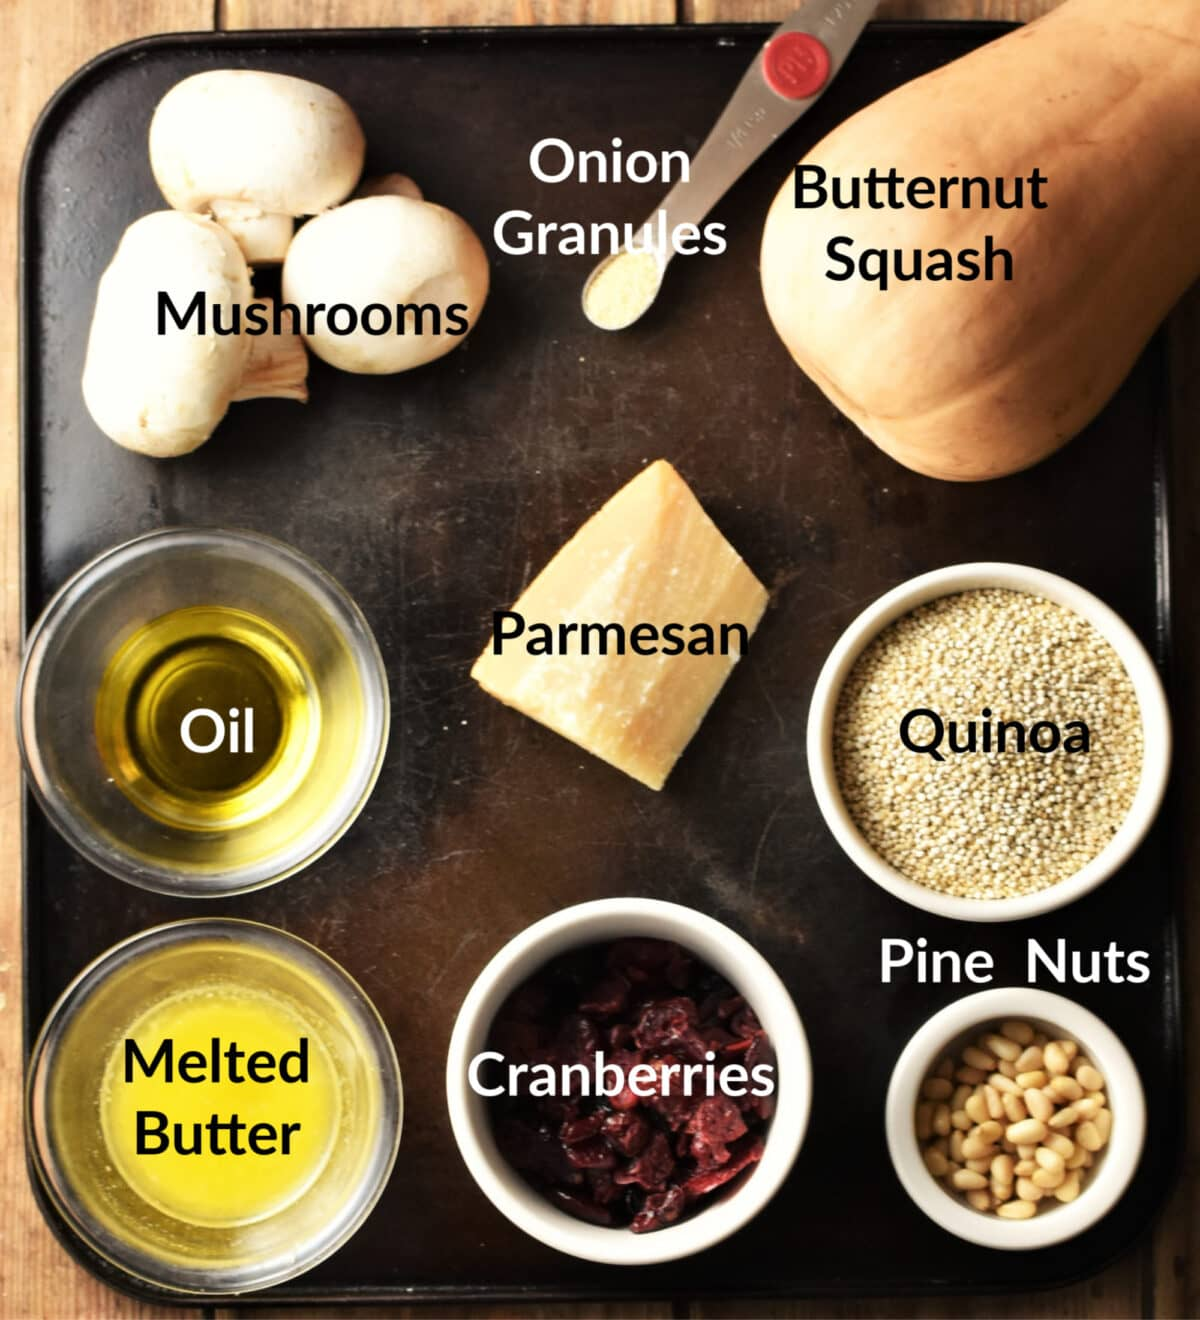 Stuffed butternut squash ingredients in separate dishes.